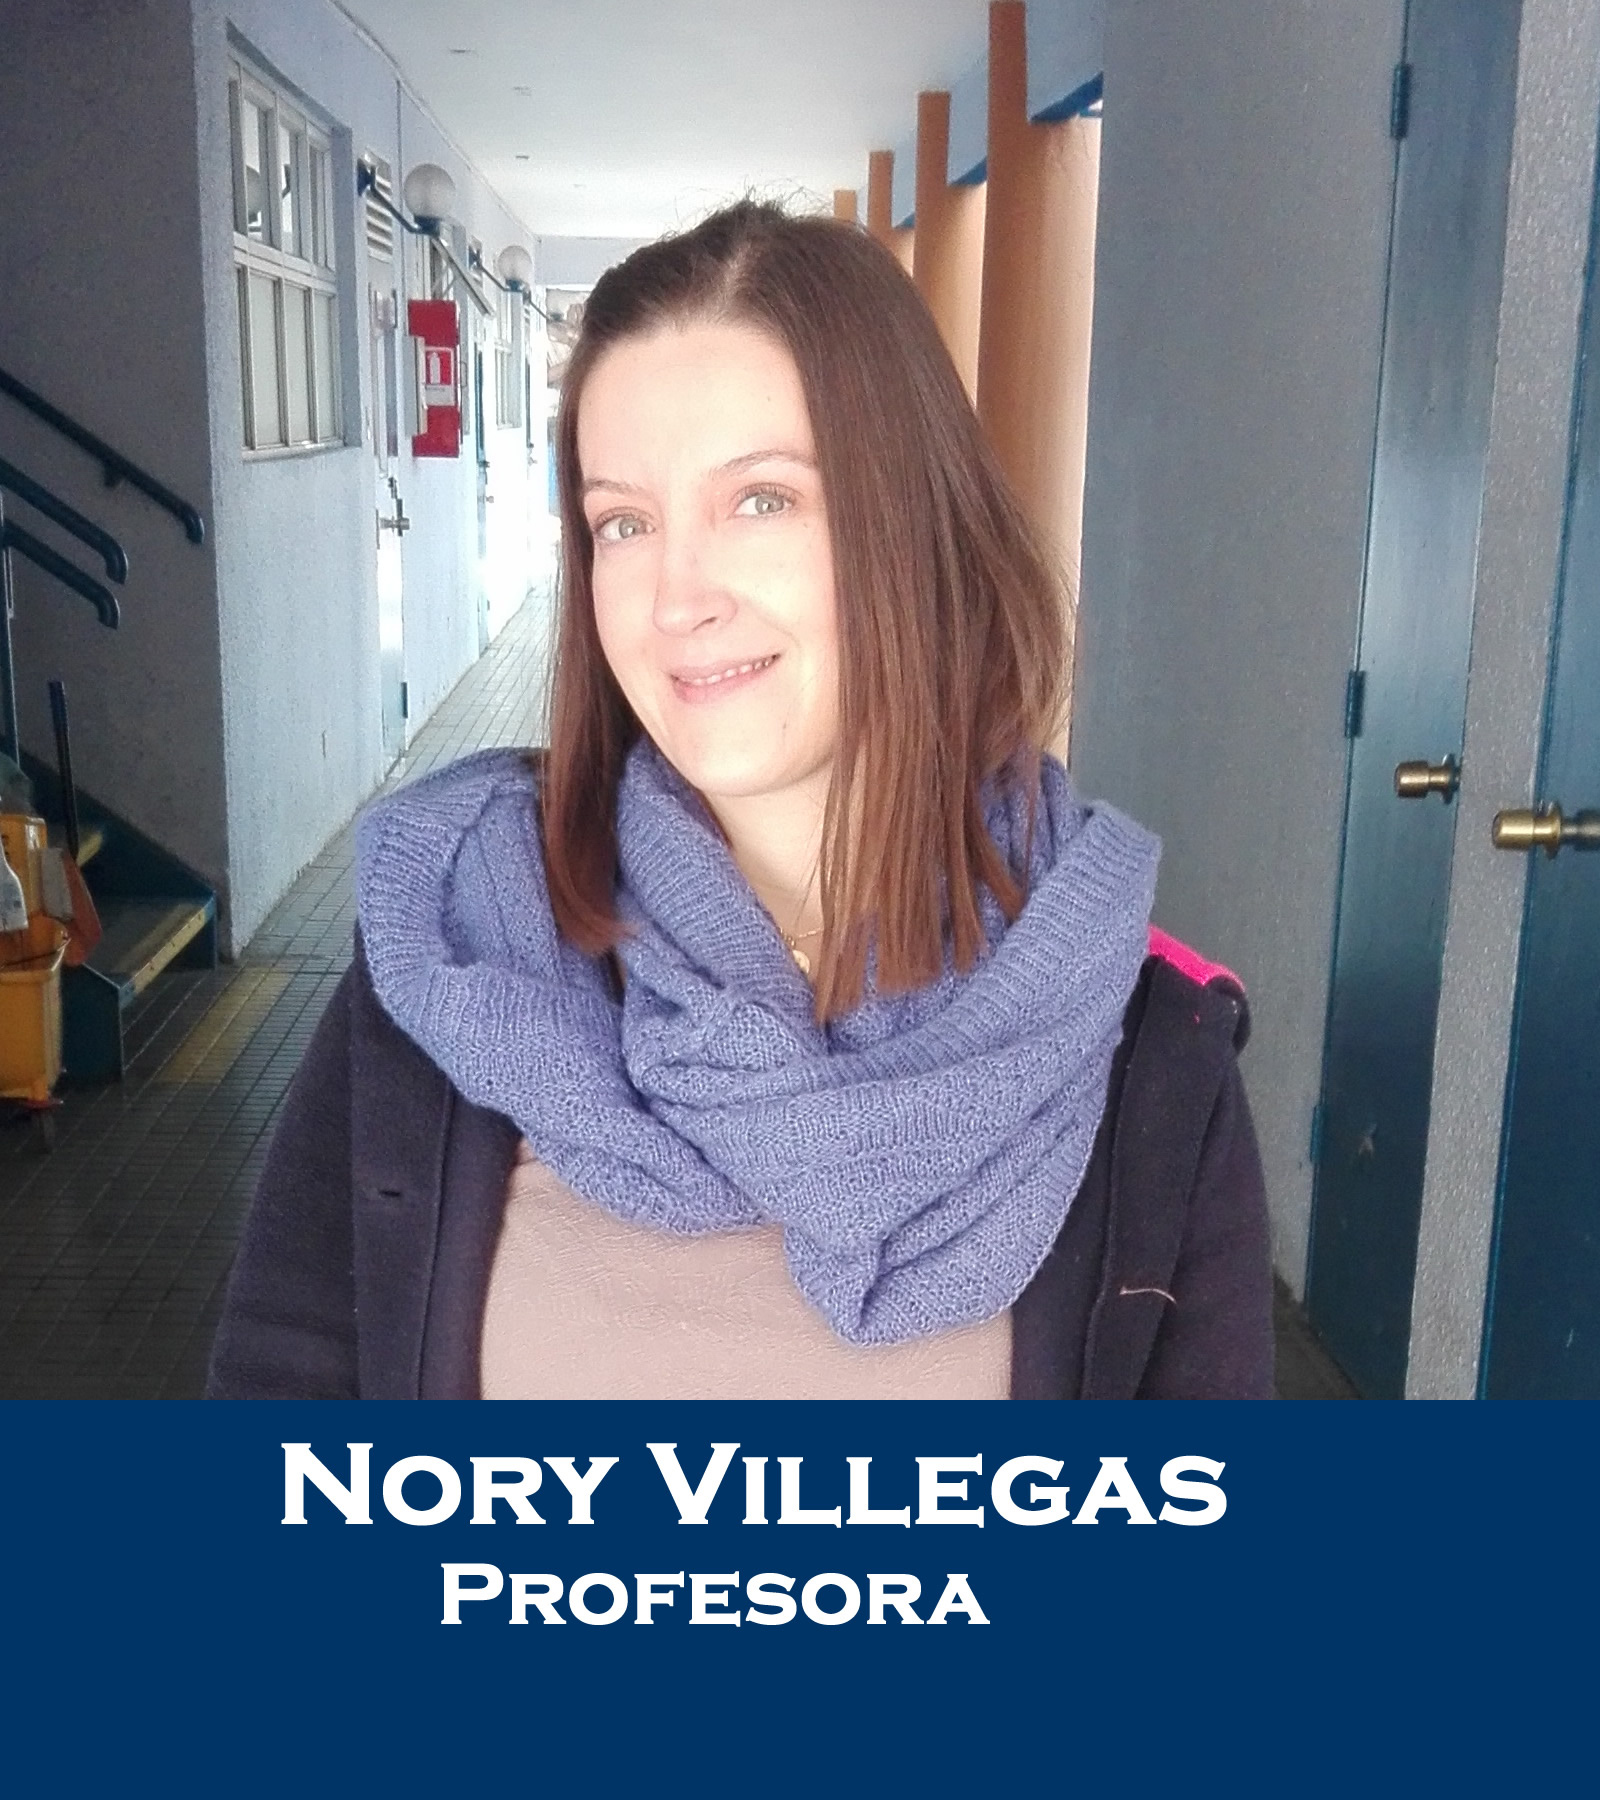 Nory-Villegas